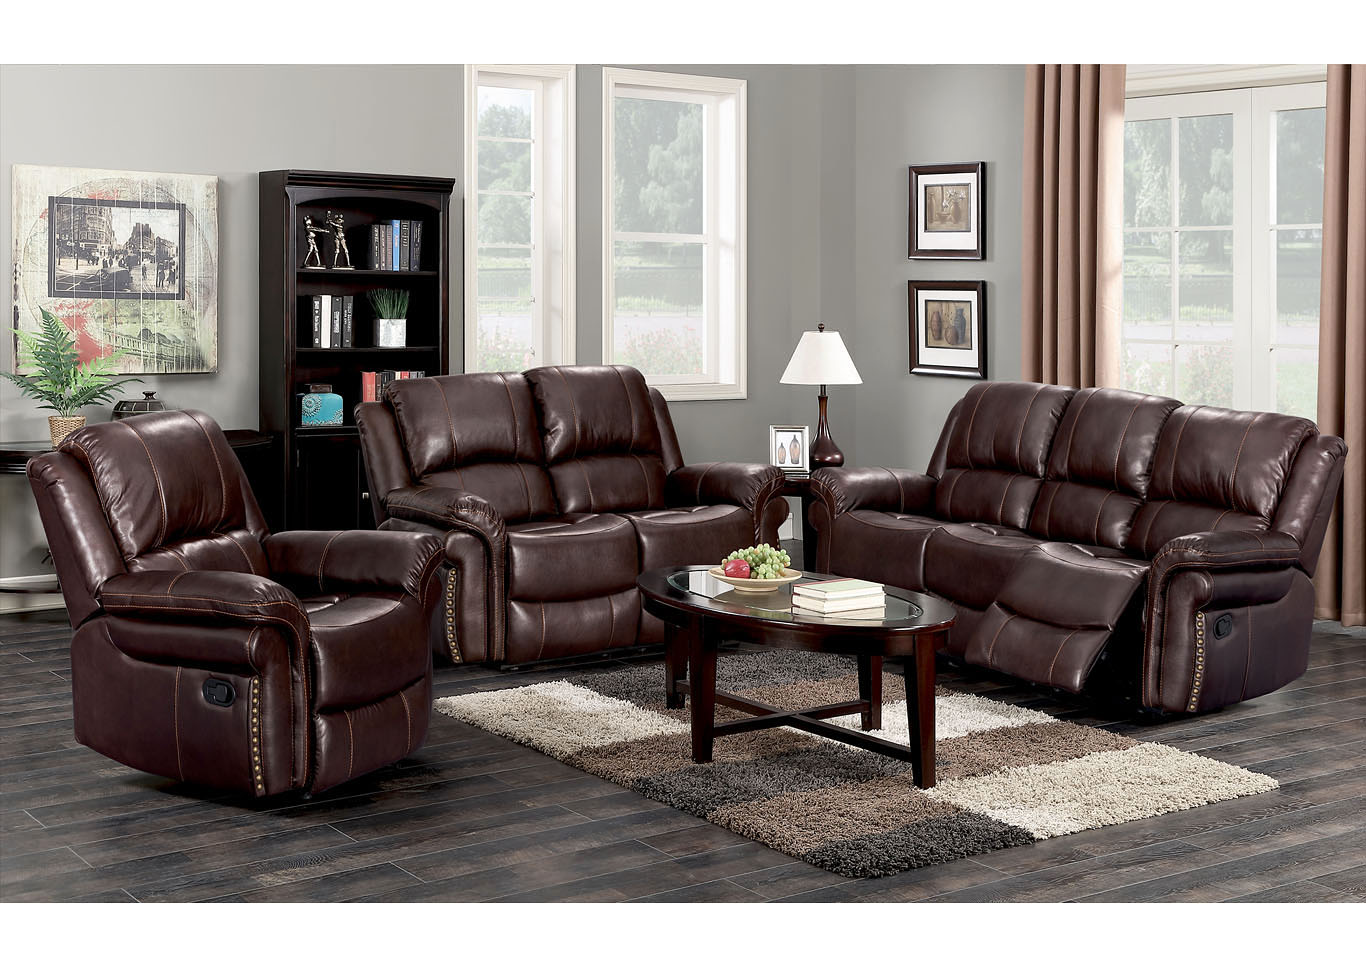 Dark Brown Sofa & Loveseat,Global Trading